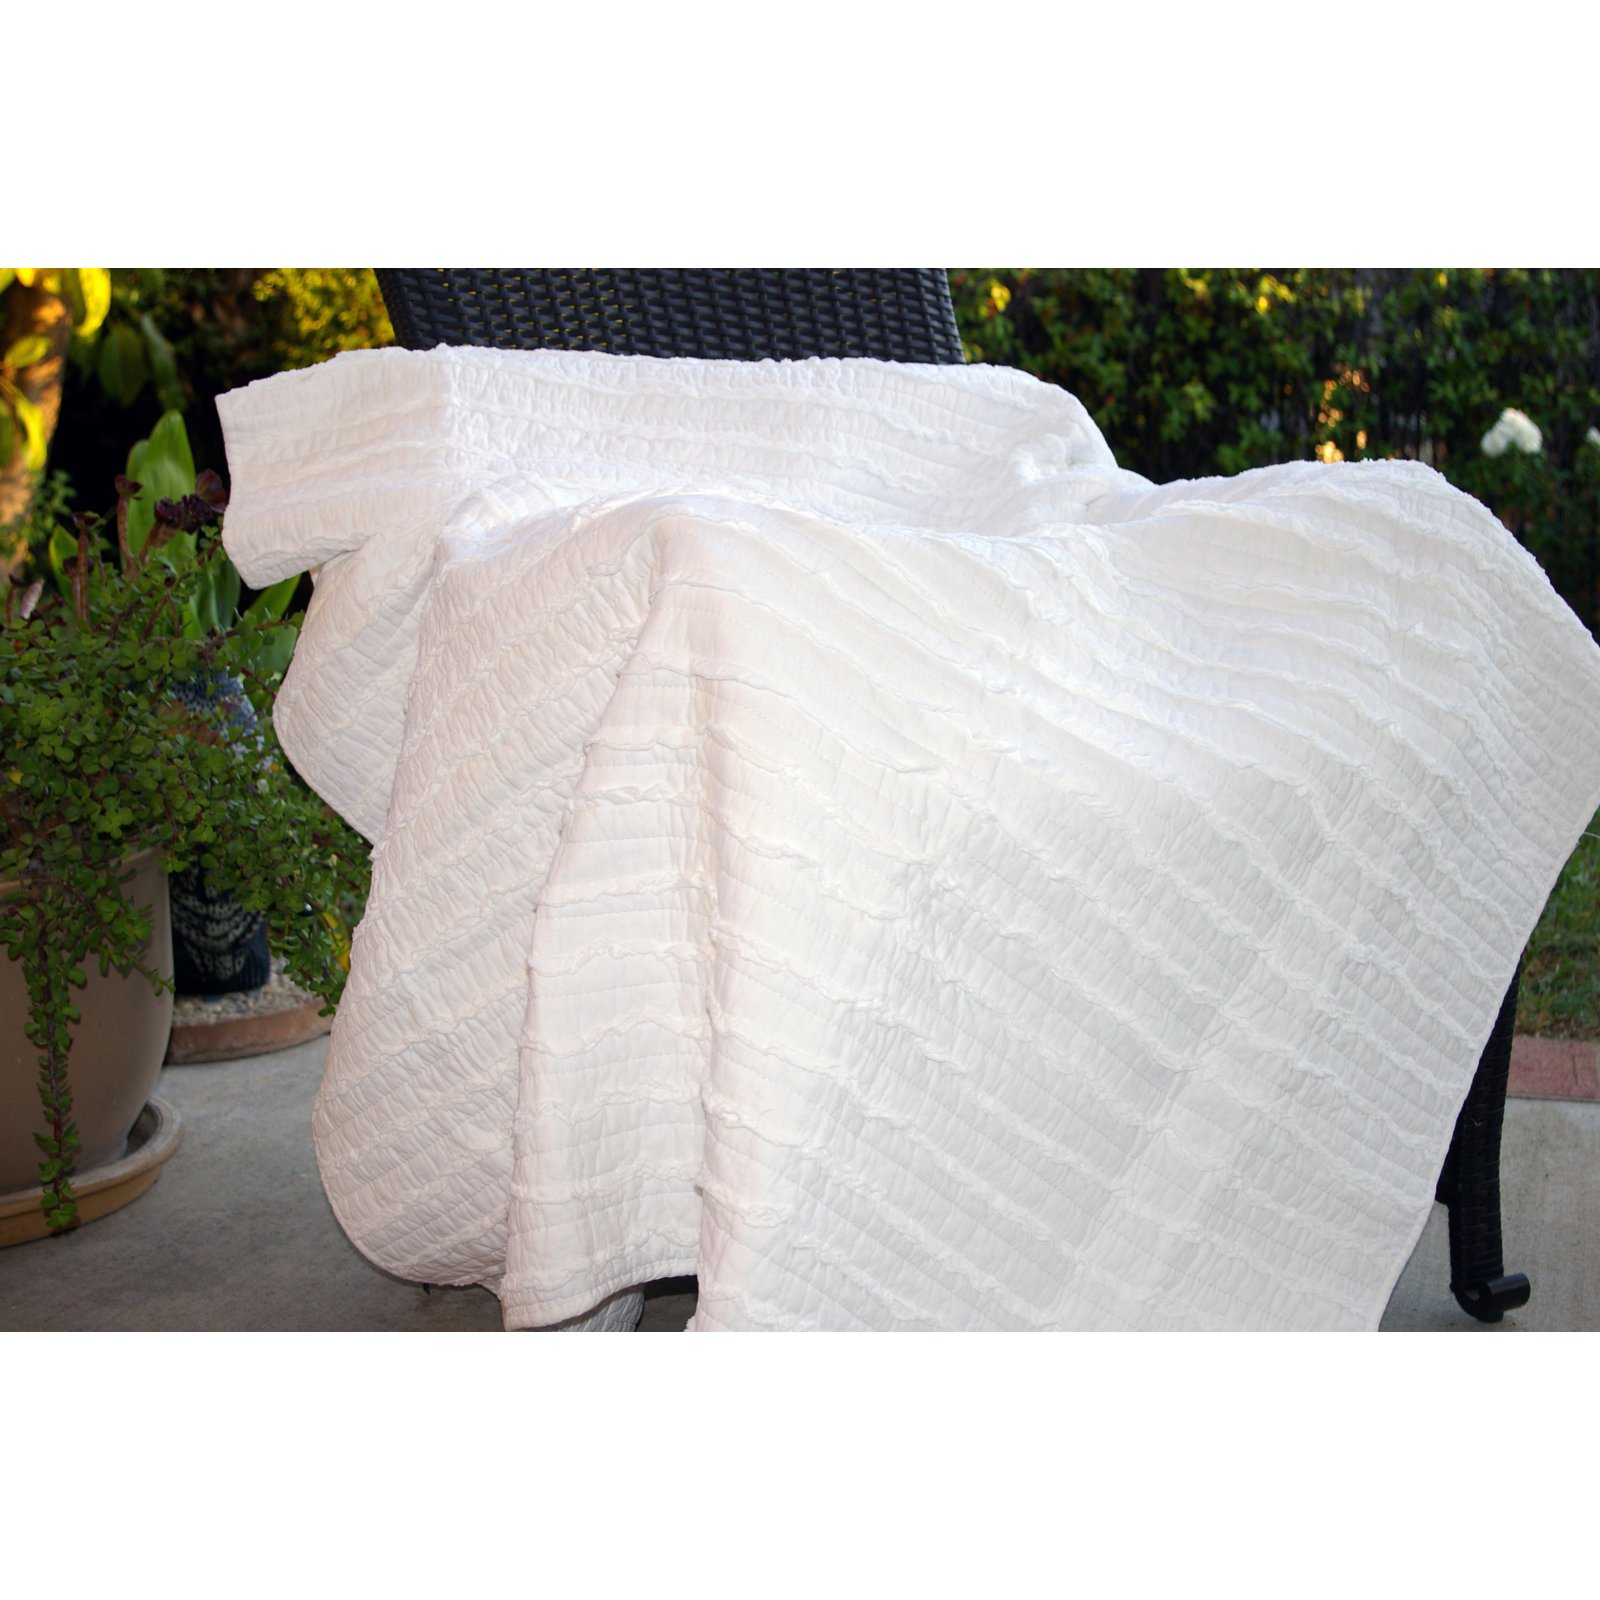 Greenland Home Fashions Ruffled Throw Blanket